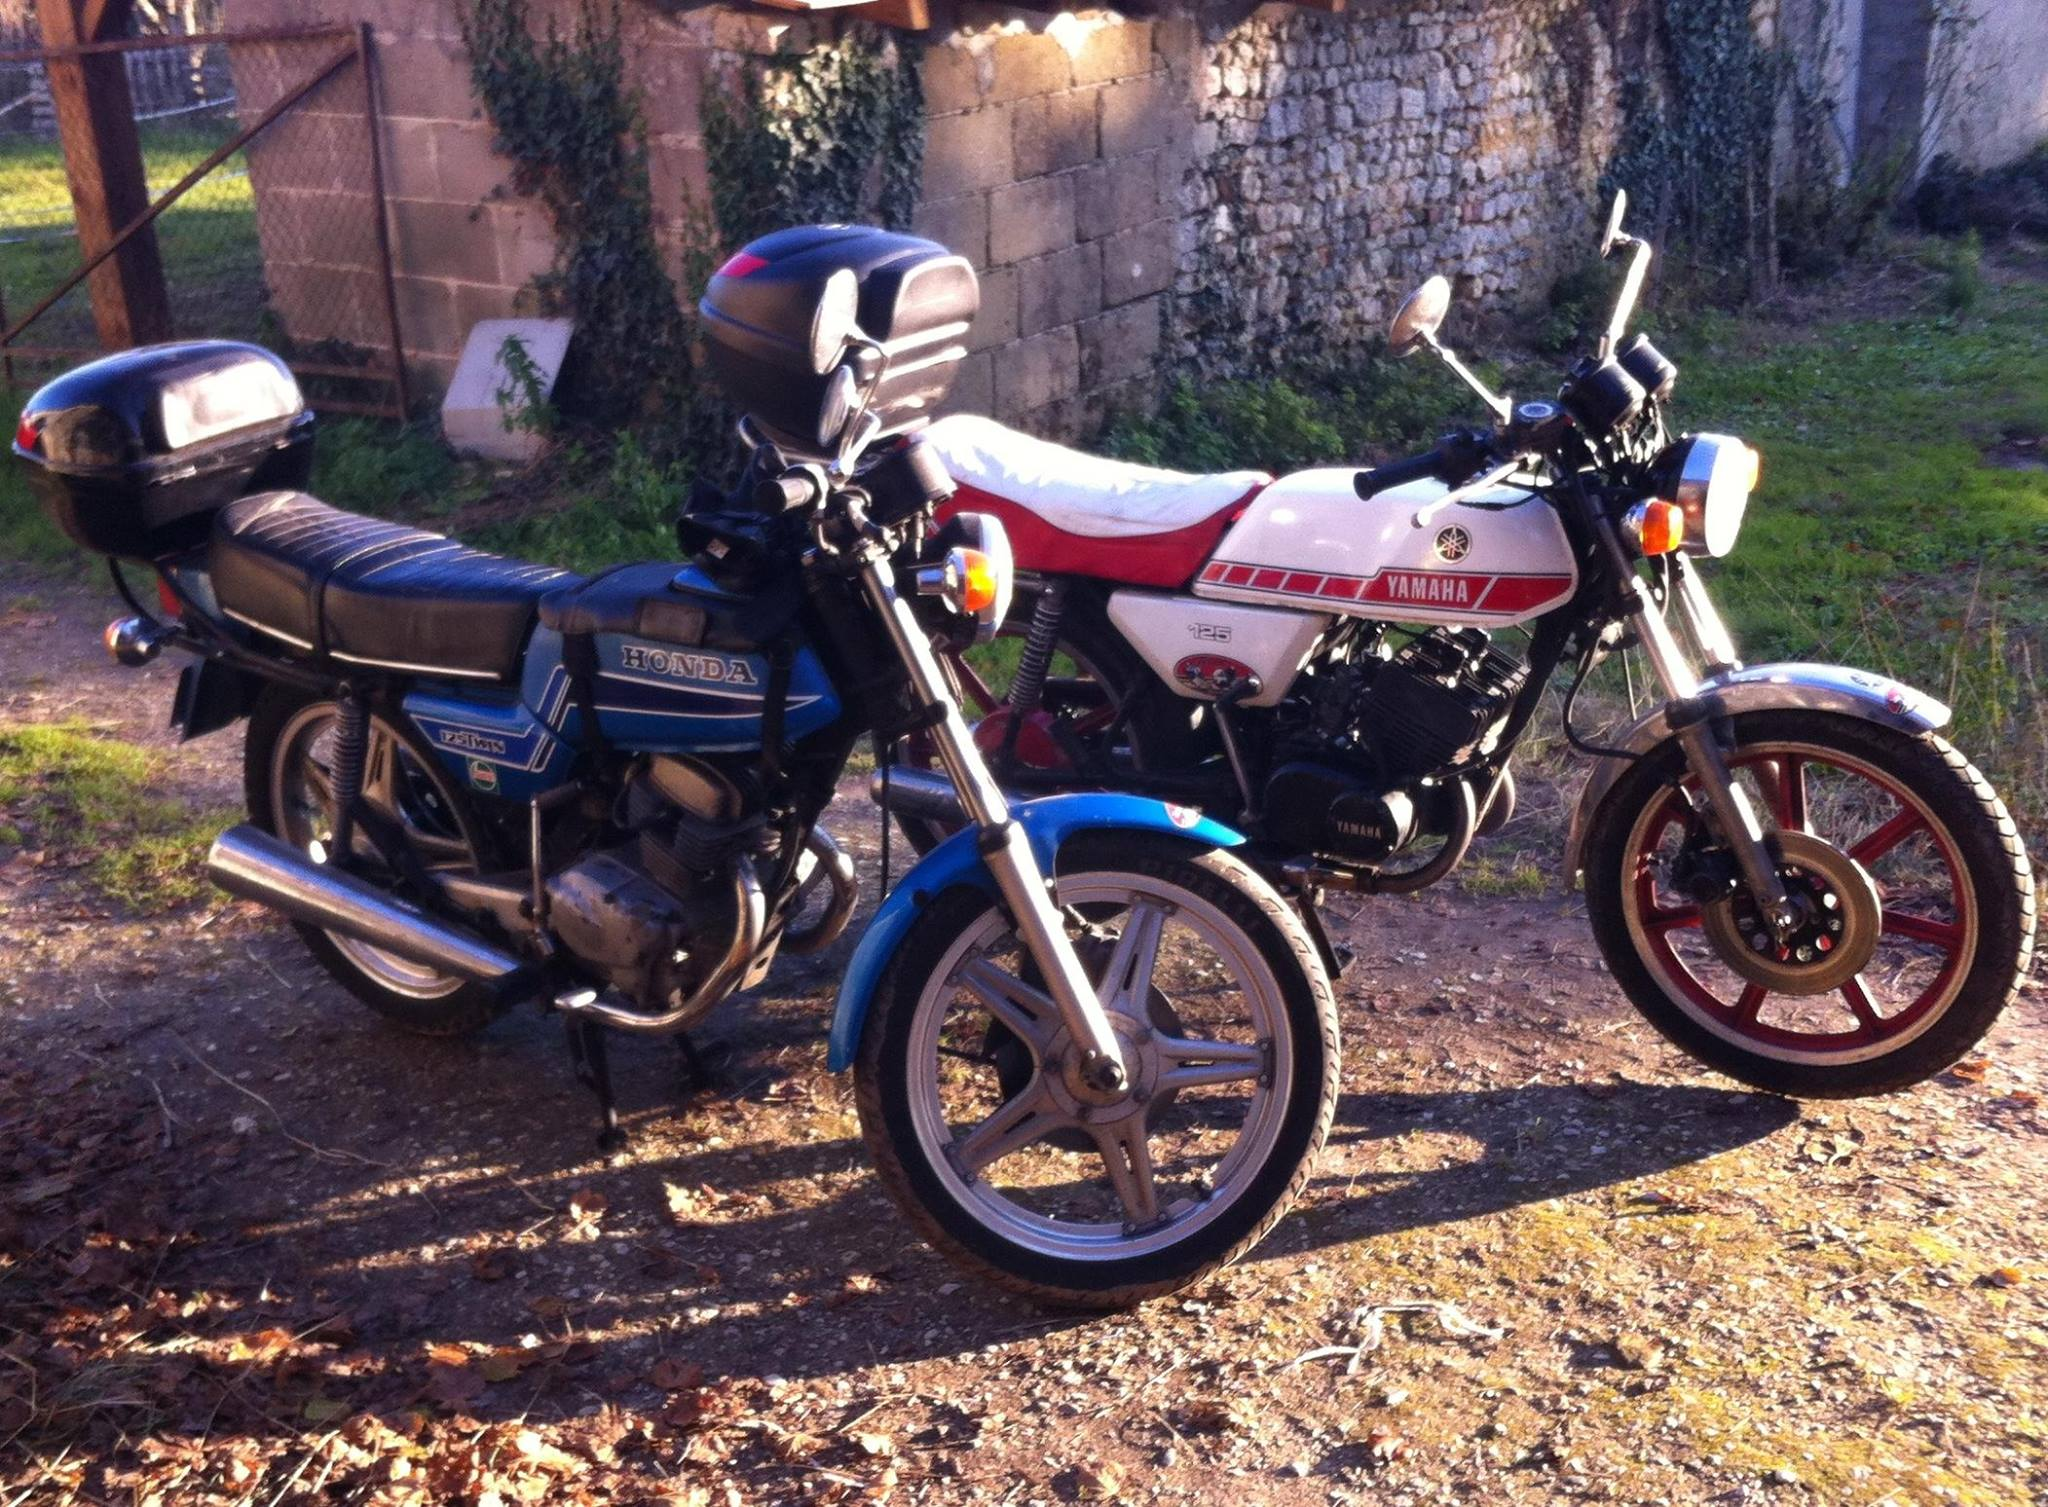 essai comparatif honda 125 t2 vs yamaha 125 rdx le blog de mes passions. Black Bedroom Furniture Sets. Home Design Ideas